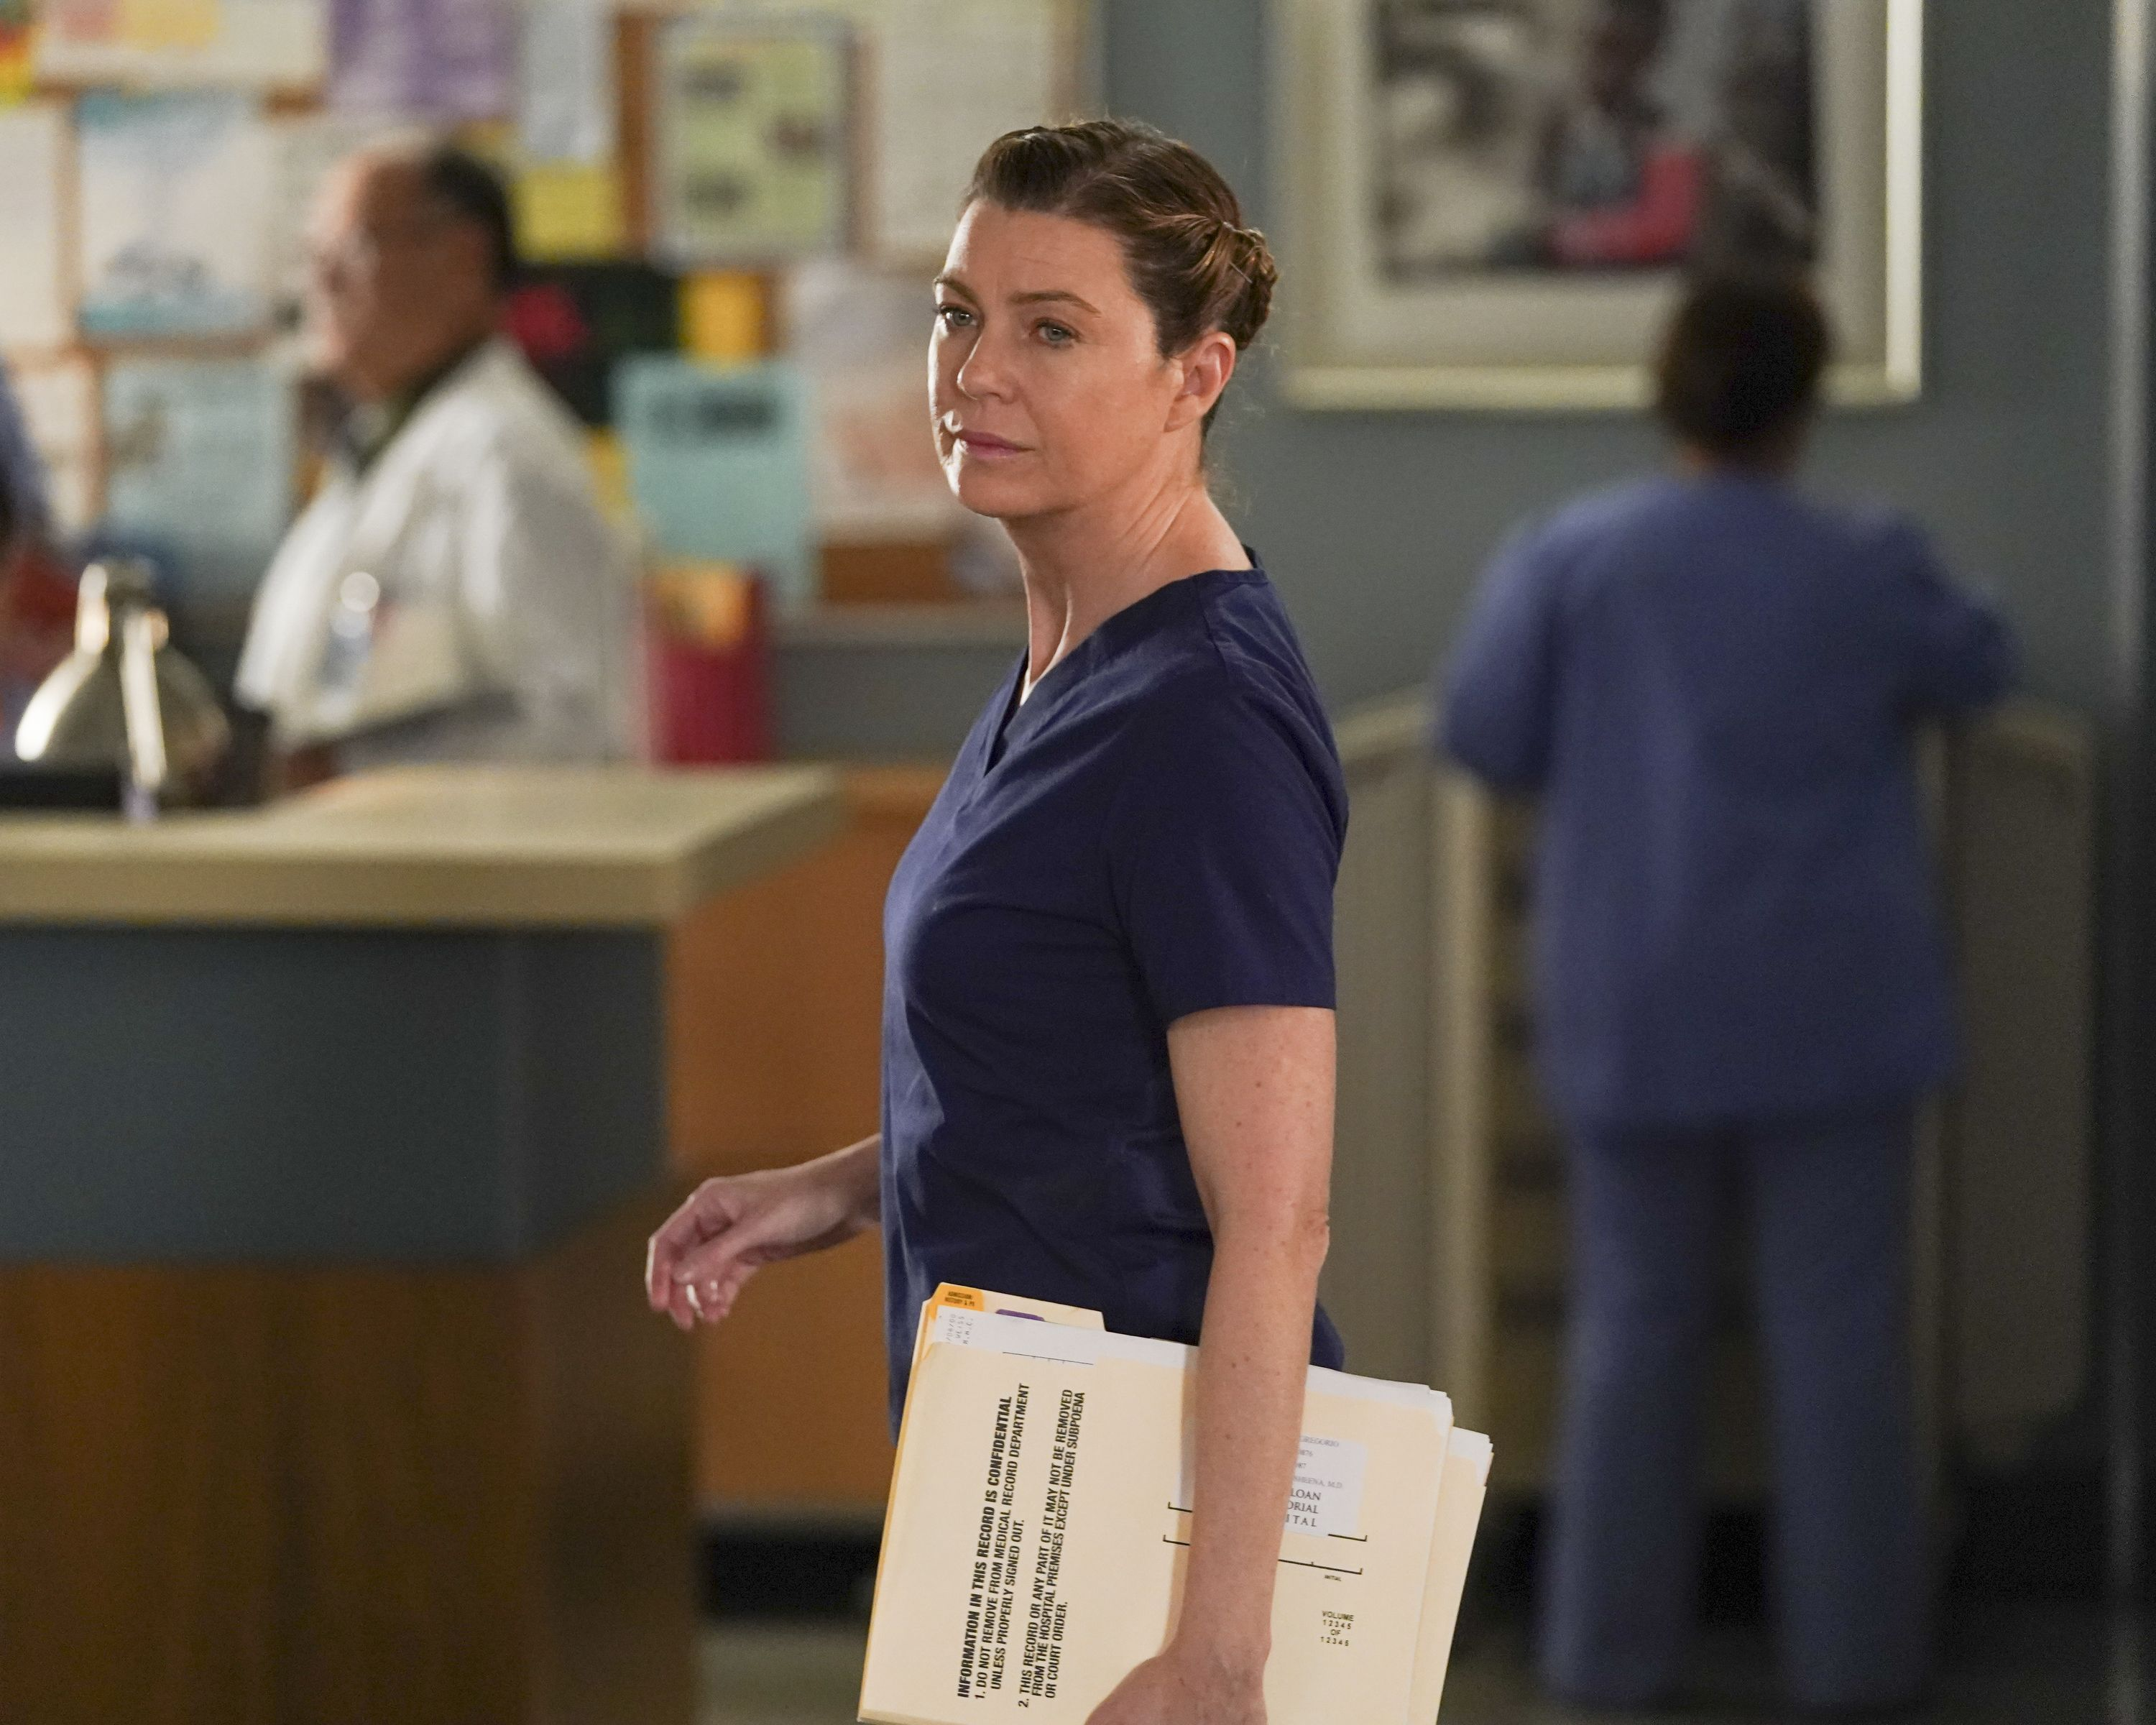 Grey S Anatomy Star Has Issue With One Of Show S Famous Scenes